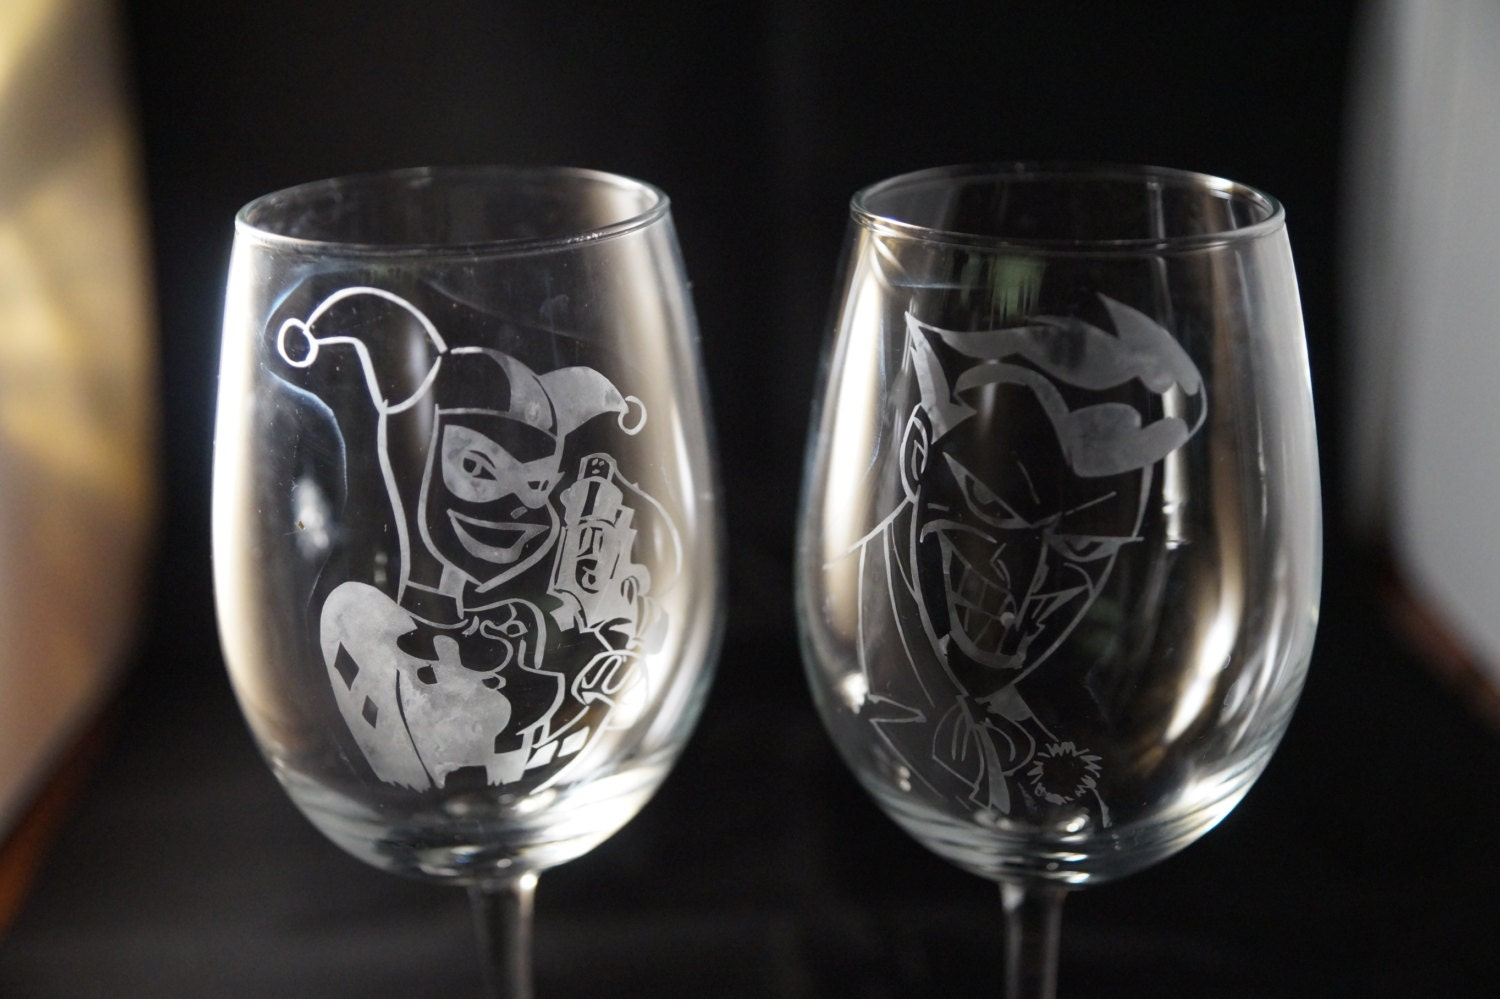 harley quinn batman harley quinn wedding ring Harley Quinn and Joker Etched Wine Glass set or Champagne Flute Set or Pint Glass Set Mad Love